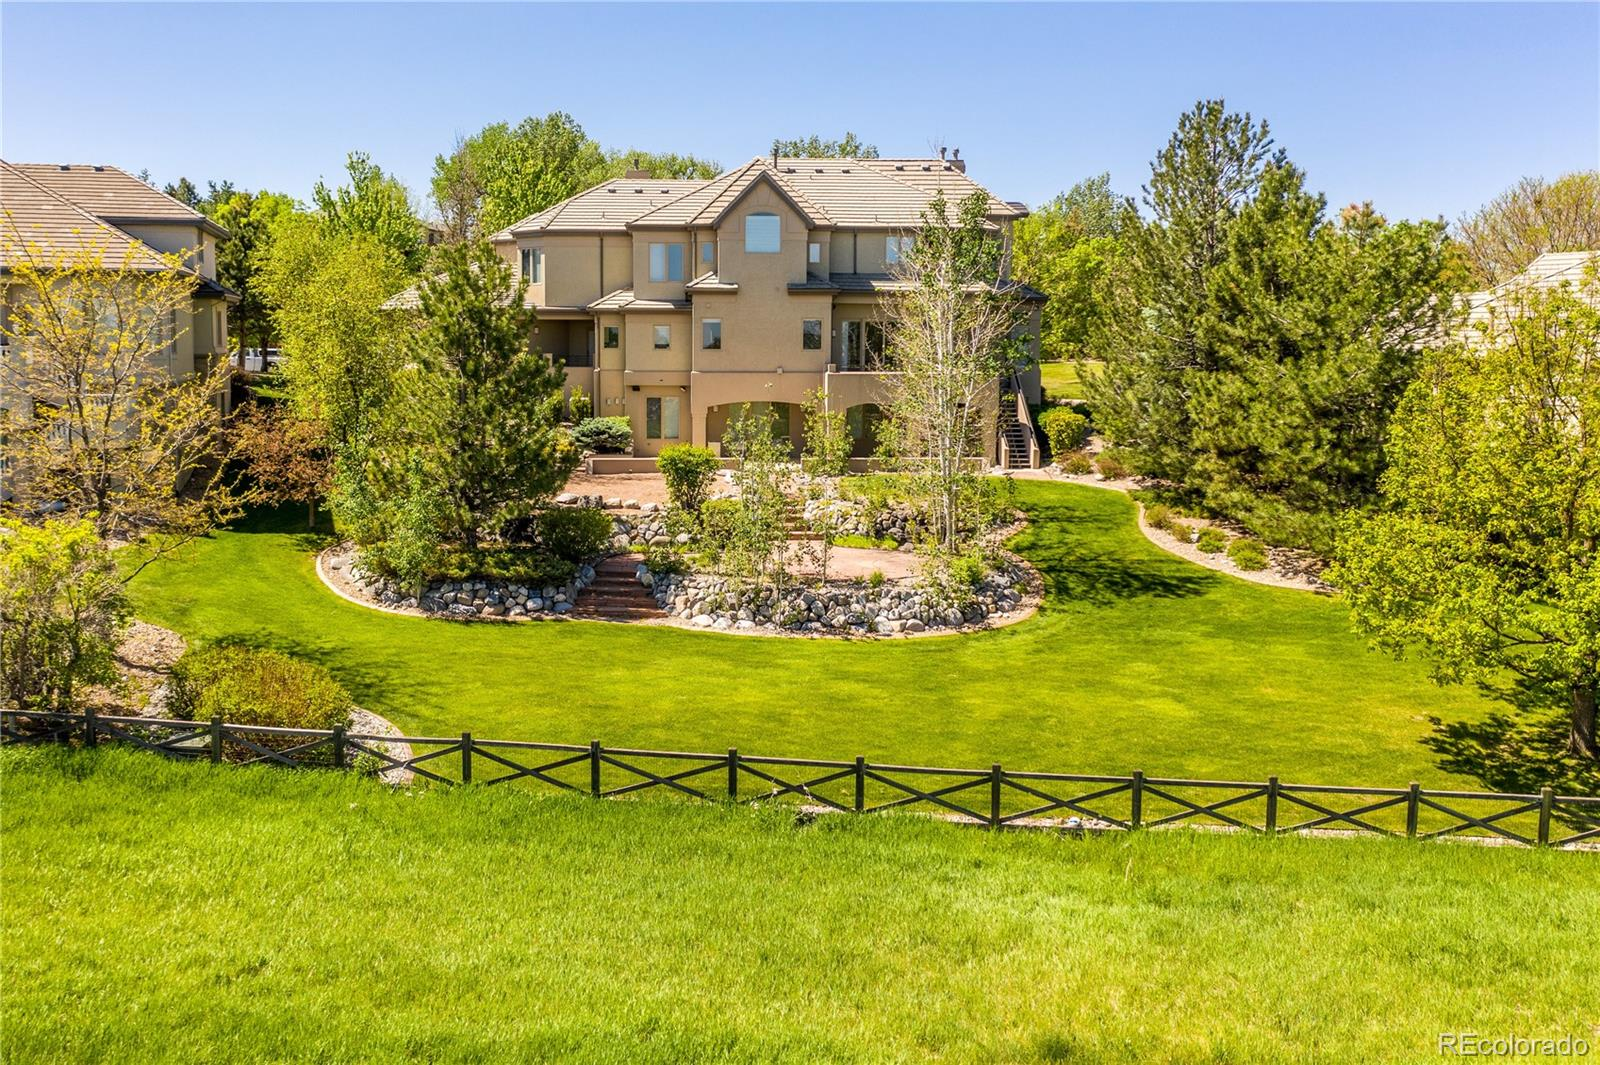 MLS# 7642553 - 38 - 3575 W 110th Place, Westminster, CO 80031